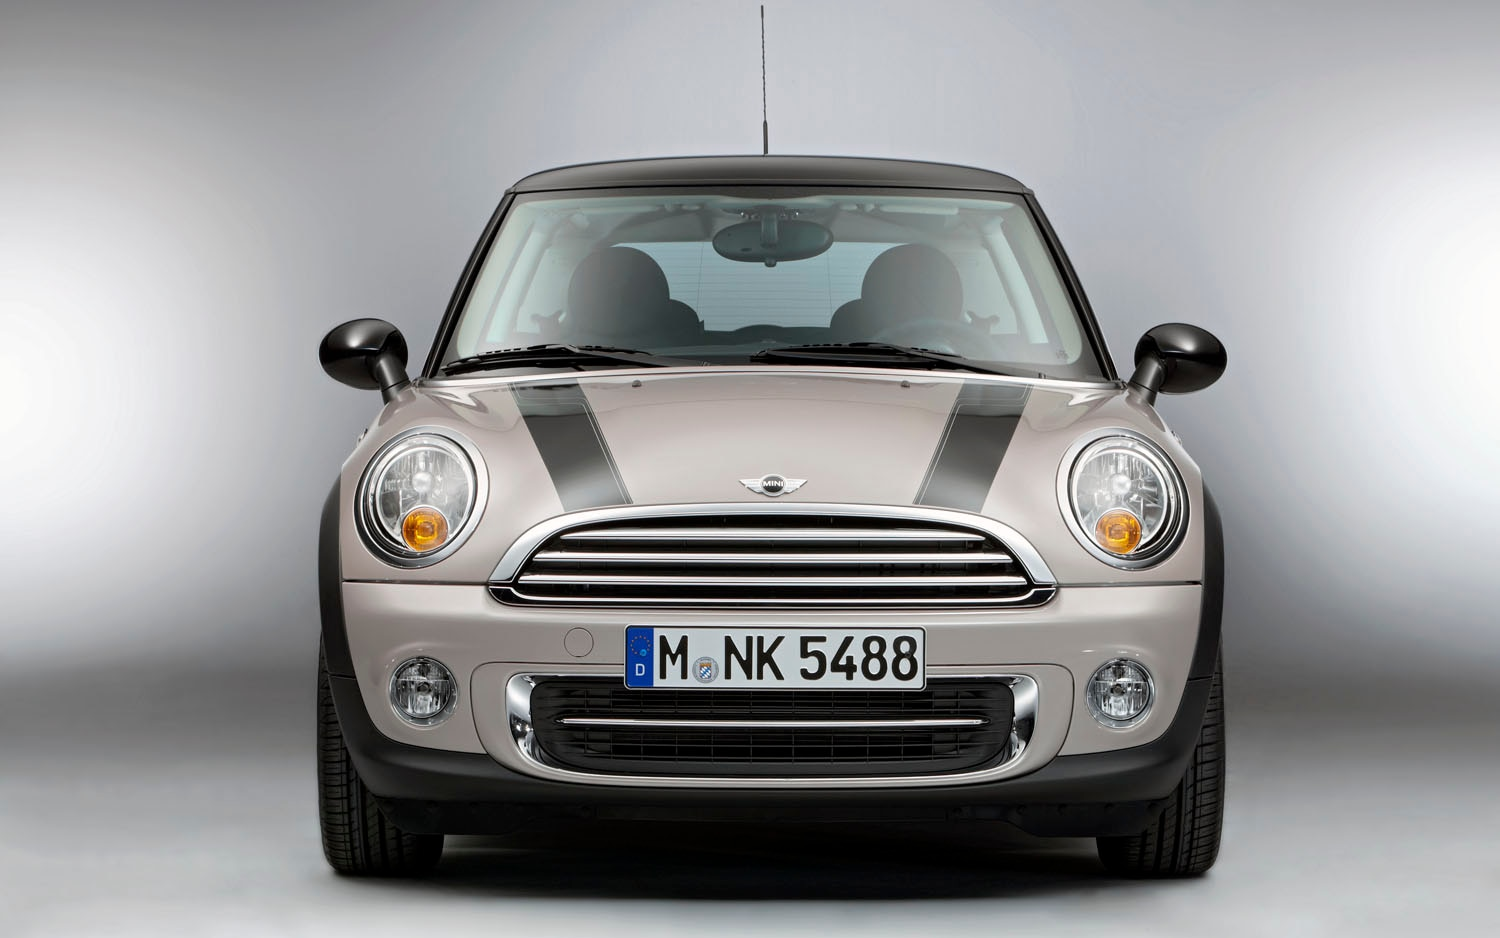 2012 Mini Cooper Baker Street Front View1